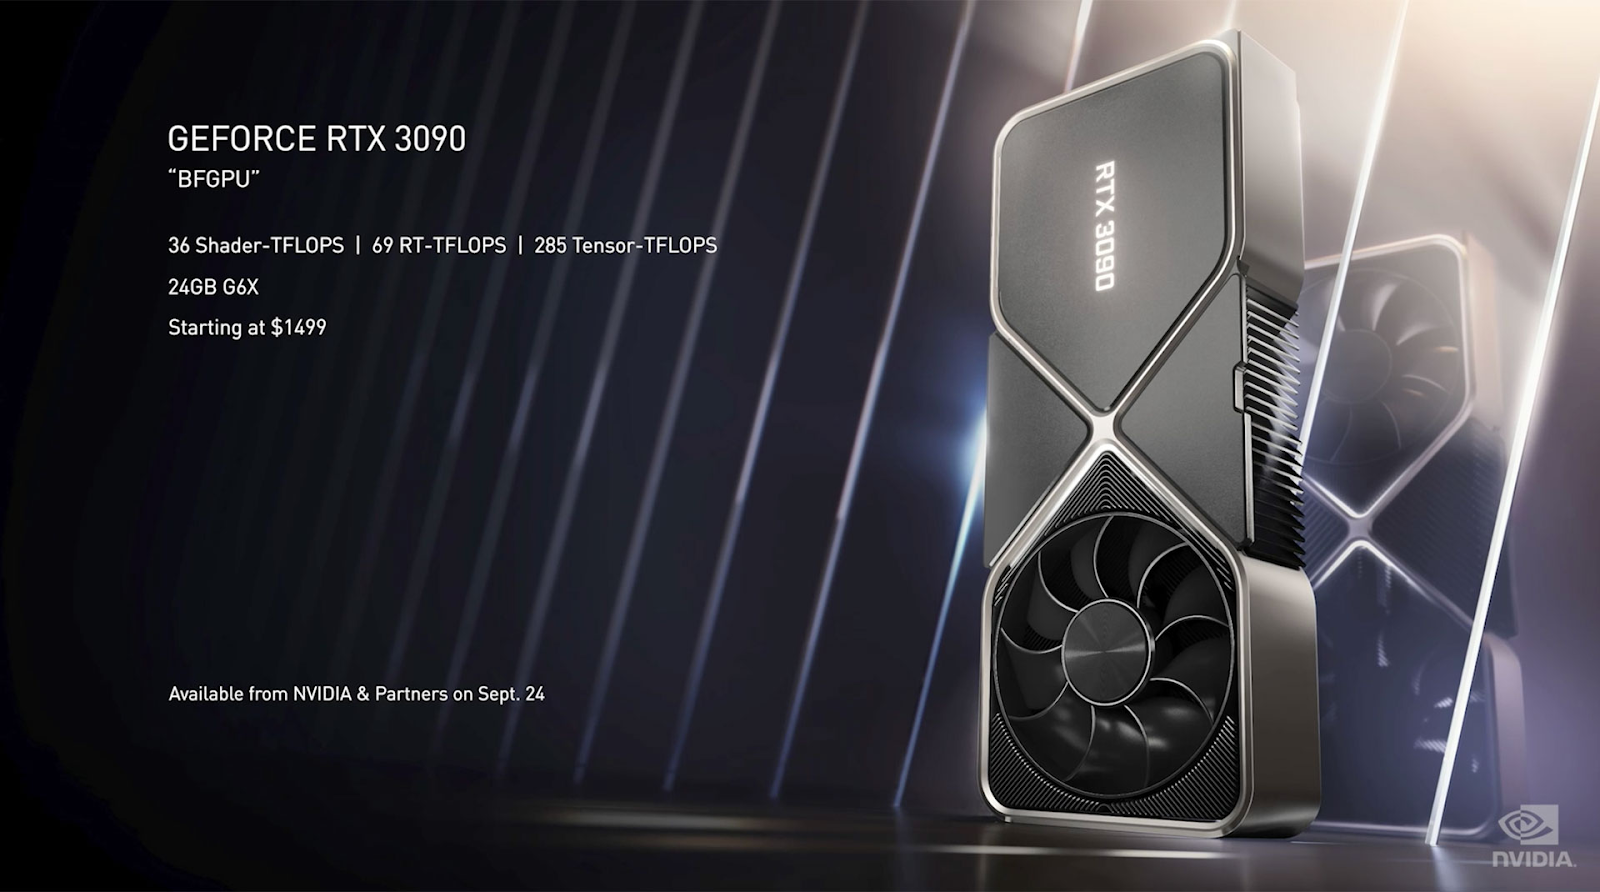 Nvidia Officially Reveals the 2nd Generation of RTX Series 4